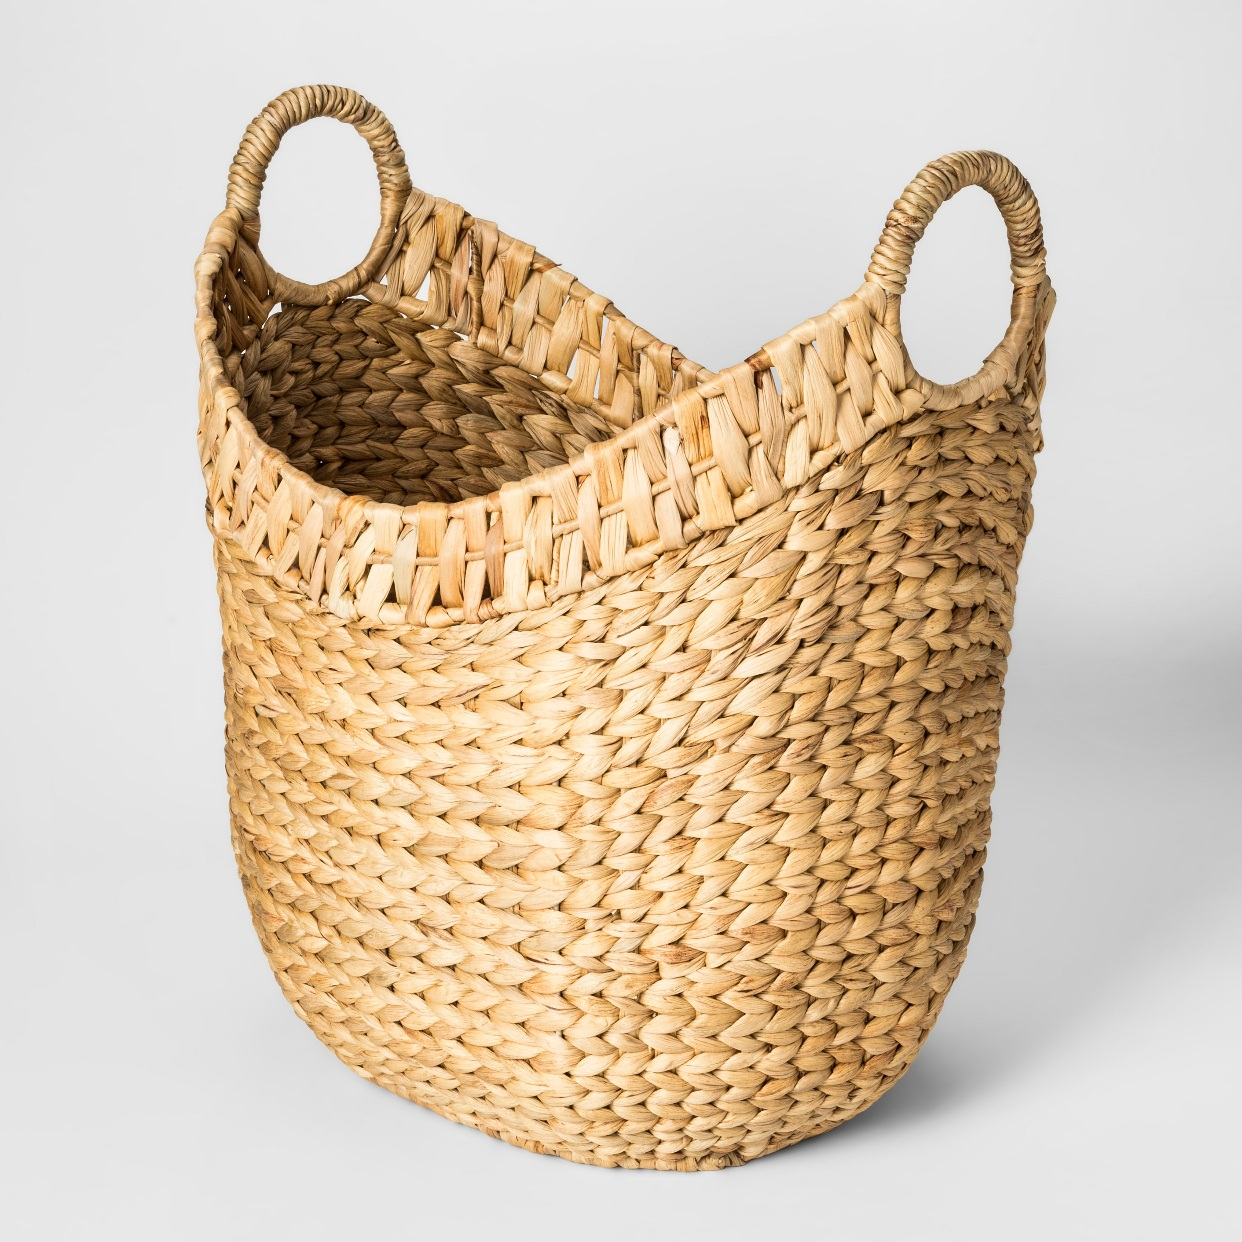 - Another new addition to our family room. We use it to store throw blankets and pillows.Find it here.